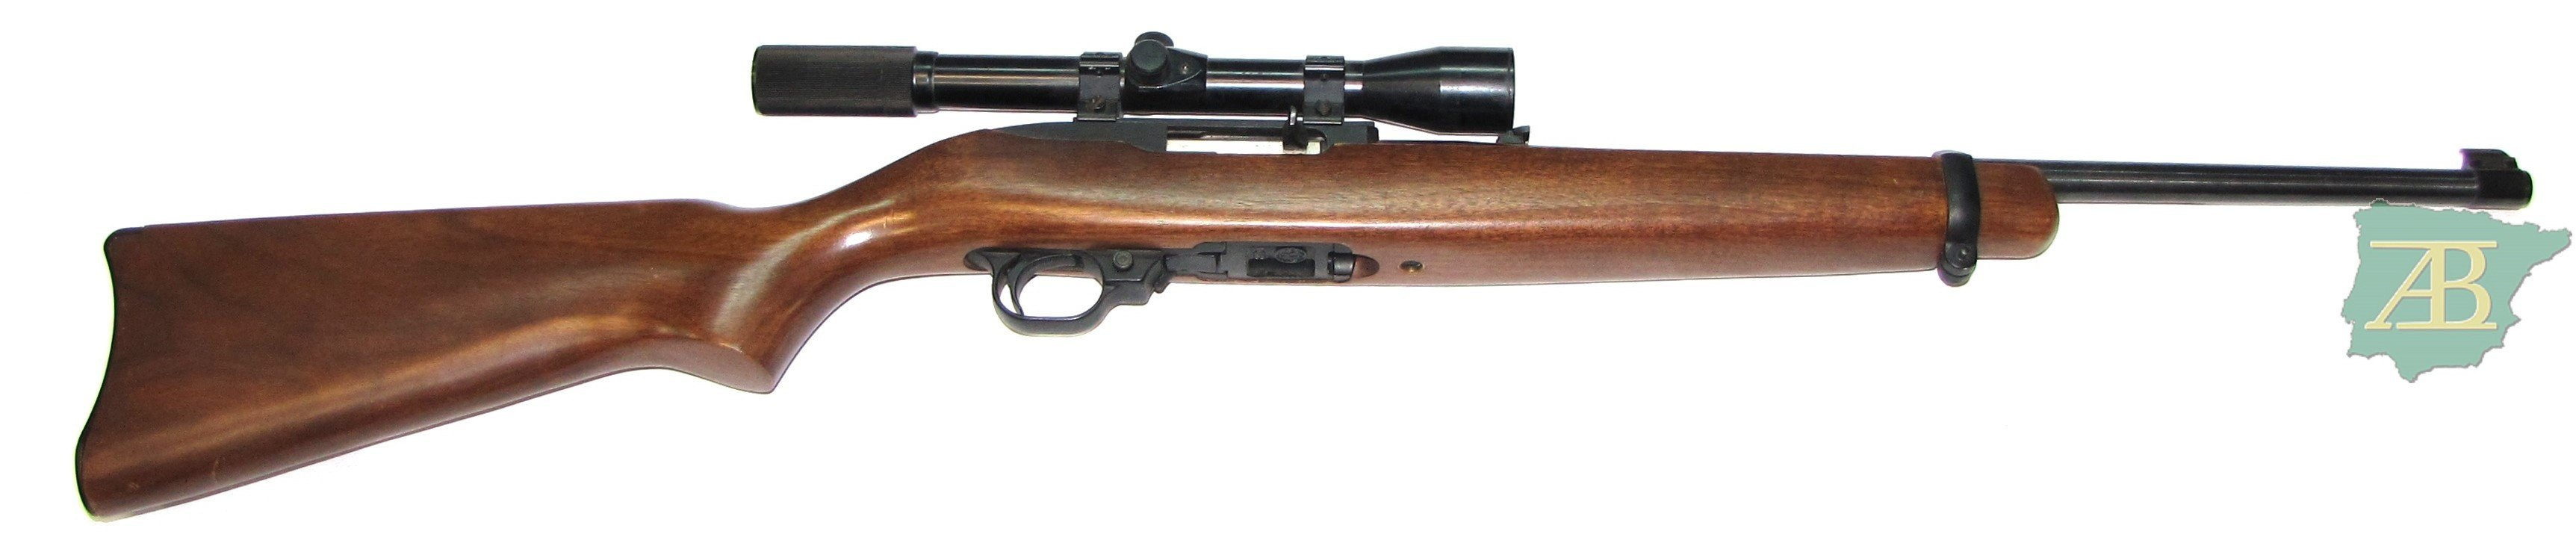 CARABINA SEMAUTOMATICA RUGER .22 LR Ref. 4981